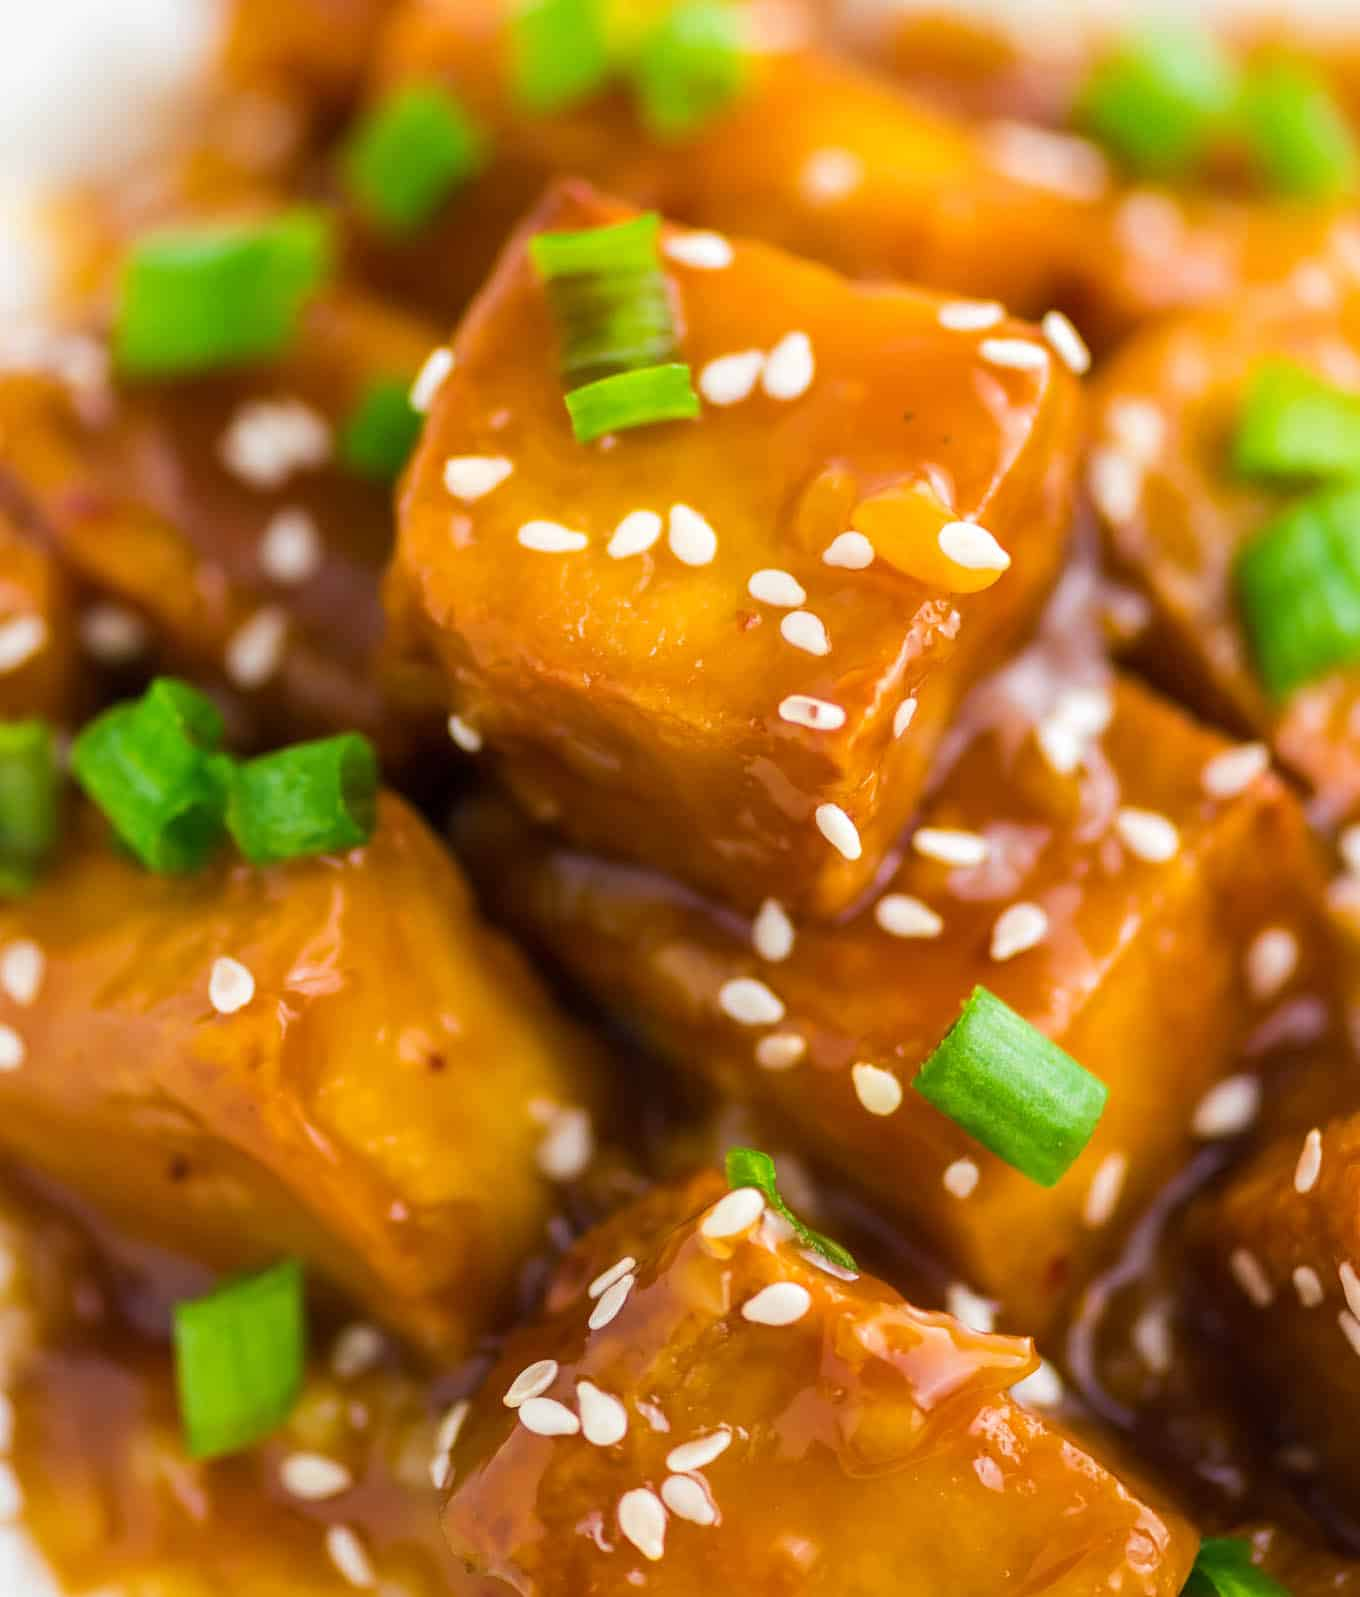 orange tofu over white rice with white sesame seeds and chopped green onions on top